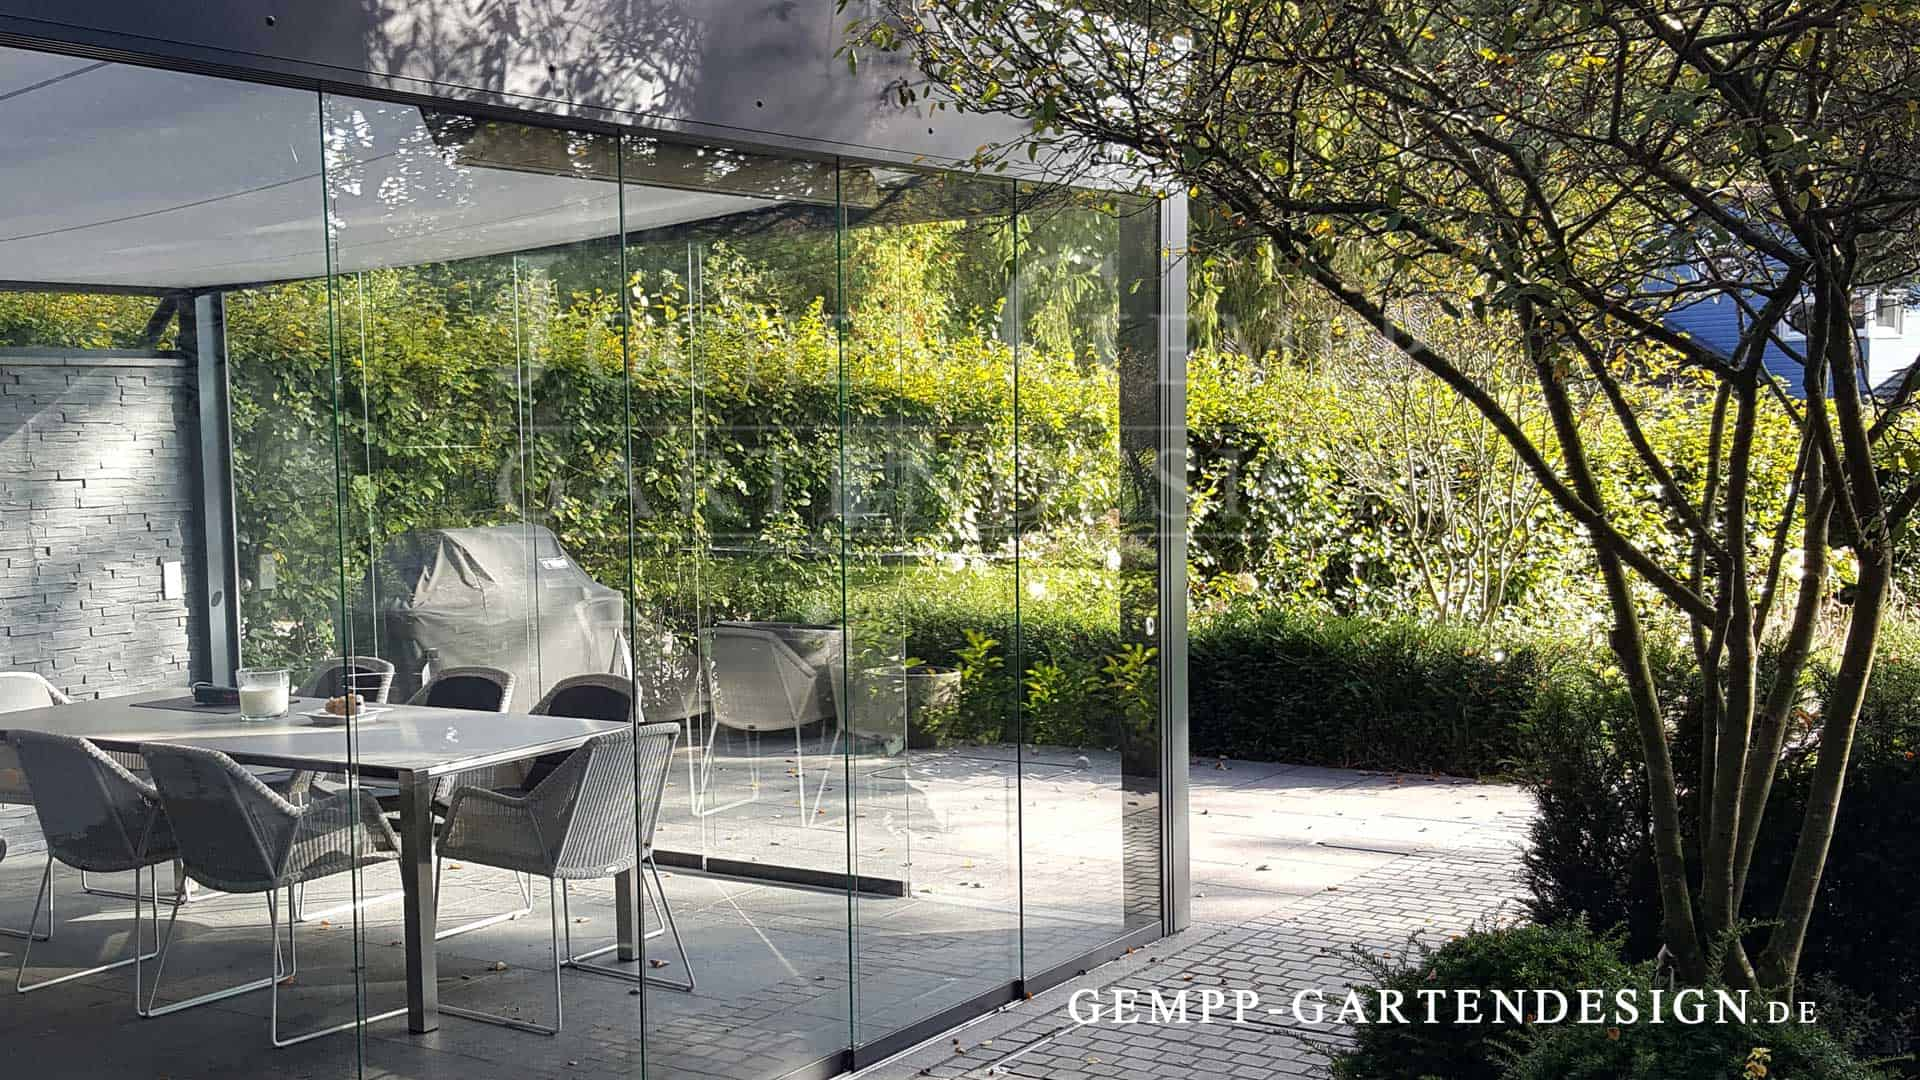 Pavillon Metall Glas Geschlossen Pavillon Metall Glas Beautiful With Pavillon Metall Glas Great